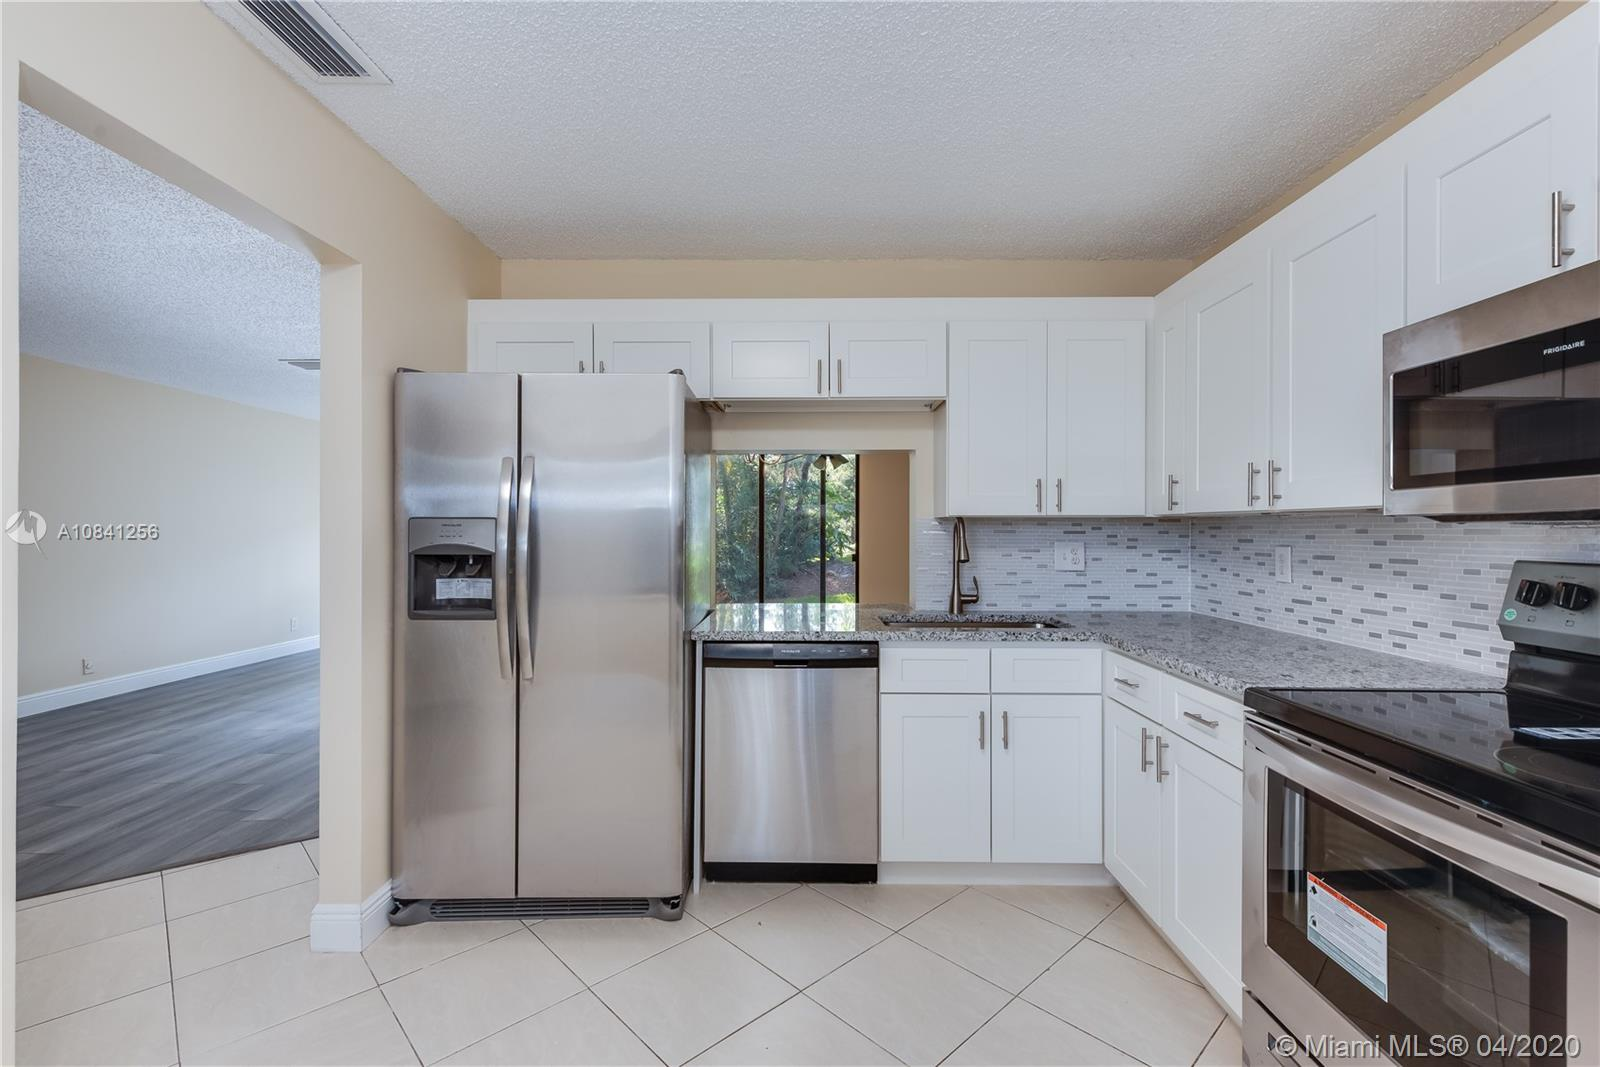 Completely Upgraded & Move-in Ready 2 Bed / 2 Bath Home in Pond Apple Place II in Coconut Creek! Featuring a spacious open layout with New Kitchen with Granite Counter Tops, Modern Wood Cabinets & Brand New SS Appliances. New Washer & Dryer. Large Master Bedroom with a Walk-in Closet, Upgraded Dual Sink Vanity & Tiled Stand-up Shower. Upgraded second bathroom. Enclosed & tiled patio with a ceiling fan & glass sliding doors. The family oriented & well maintained community offers a large pool, children's playground, BBQ area AND MUCH MORE!! SCHEDULE YOUR TOUR NOW!!